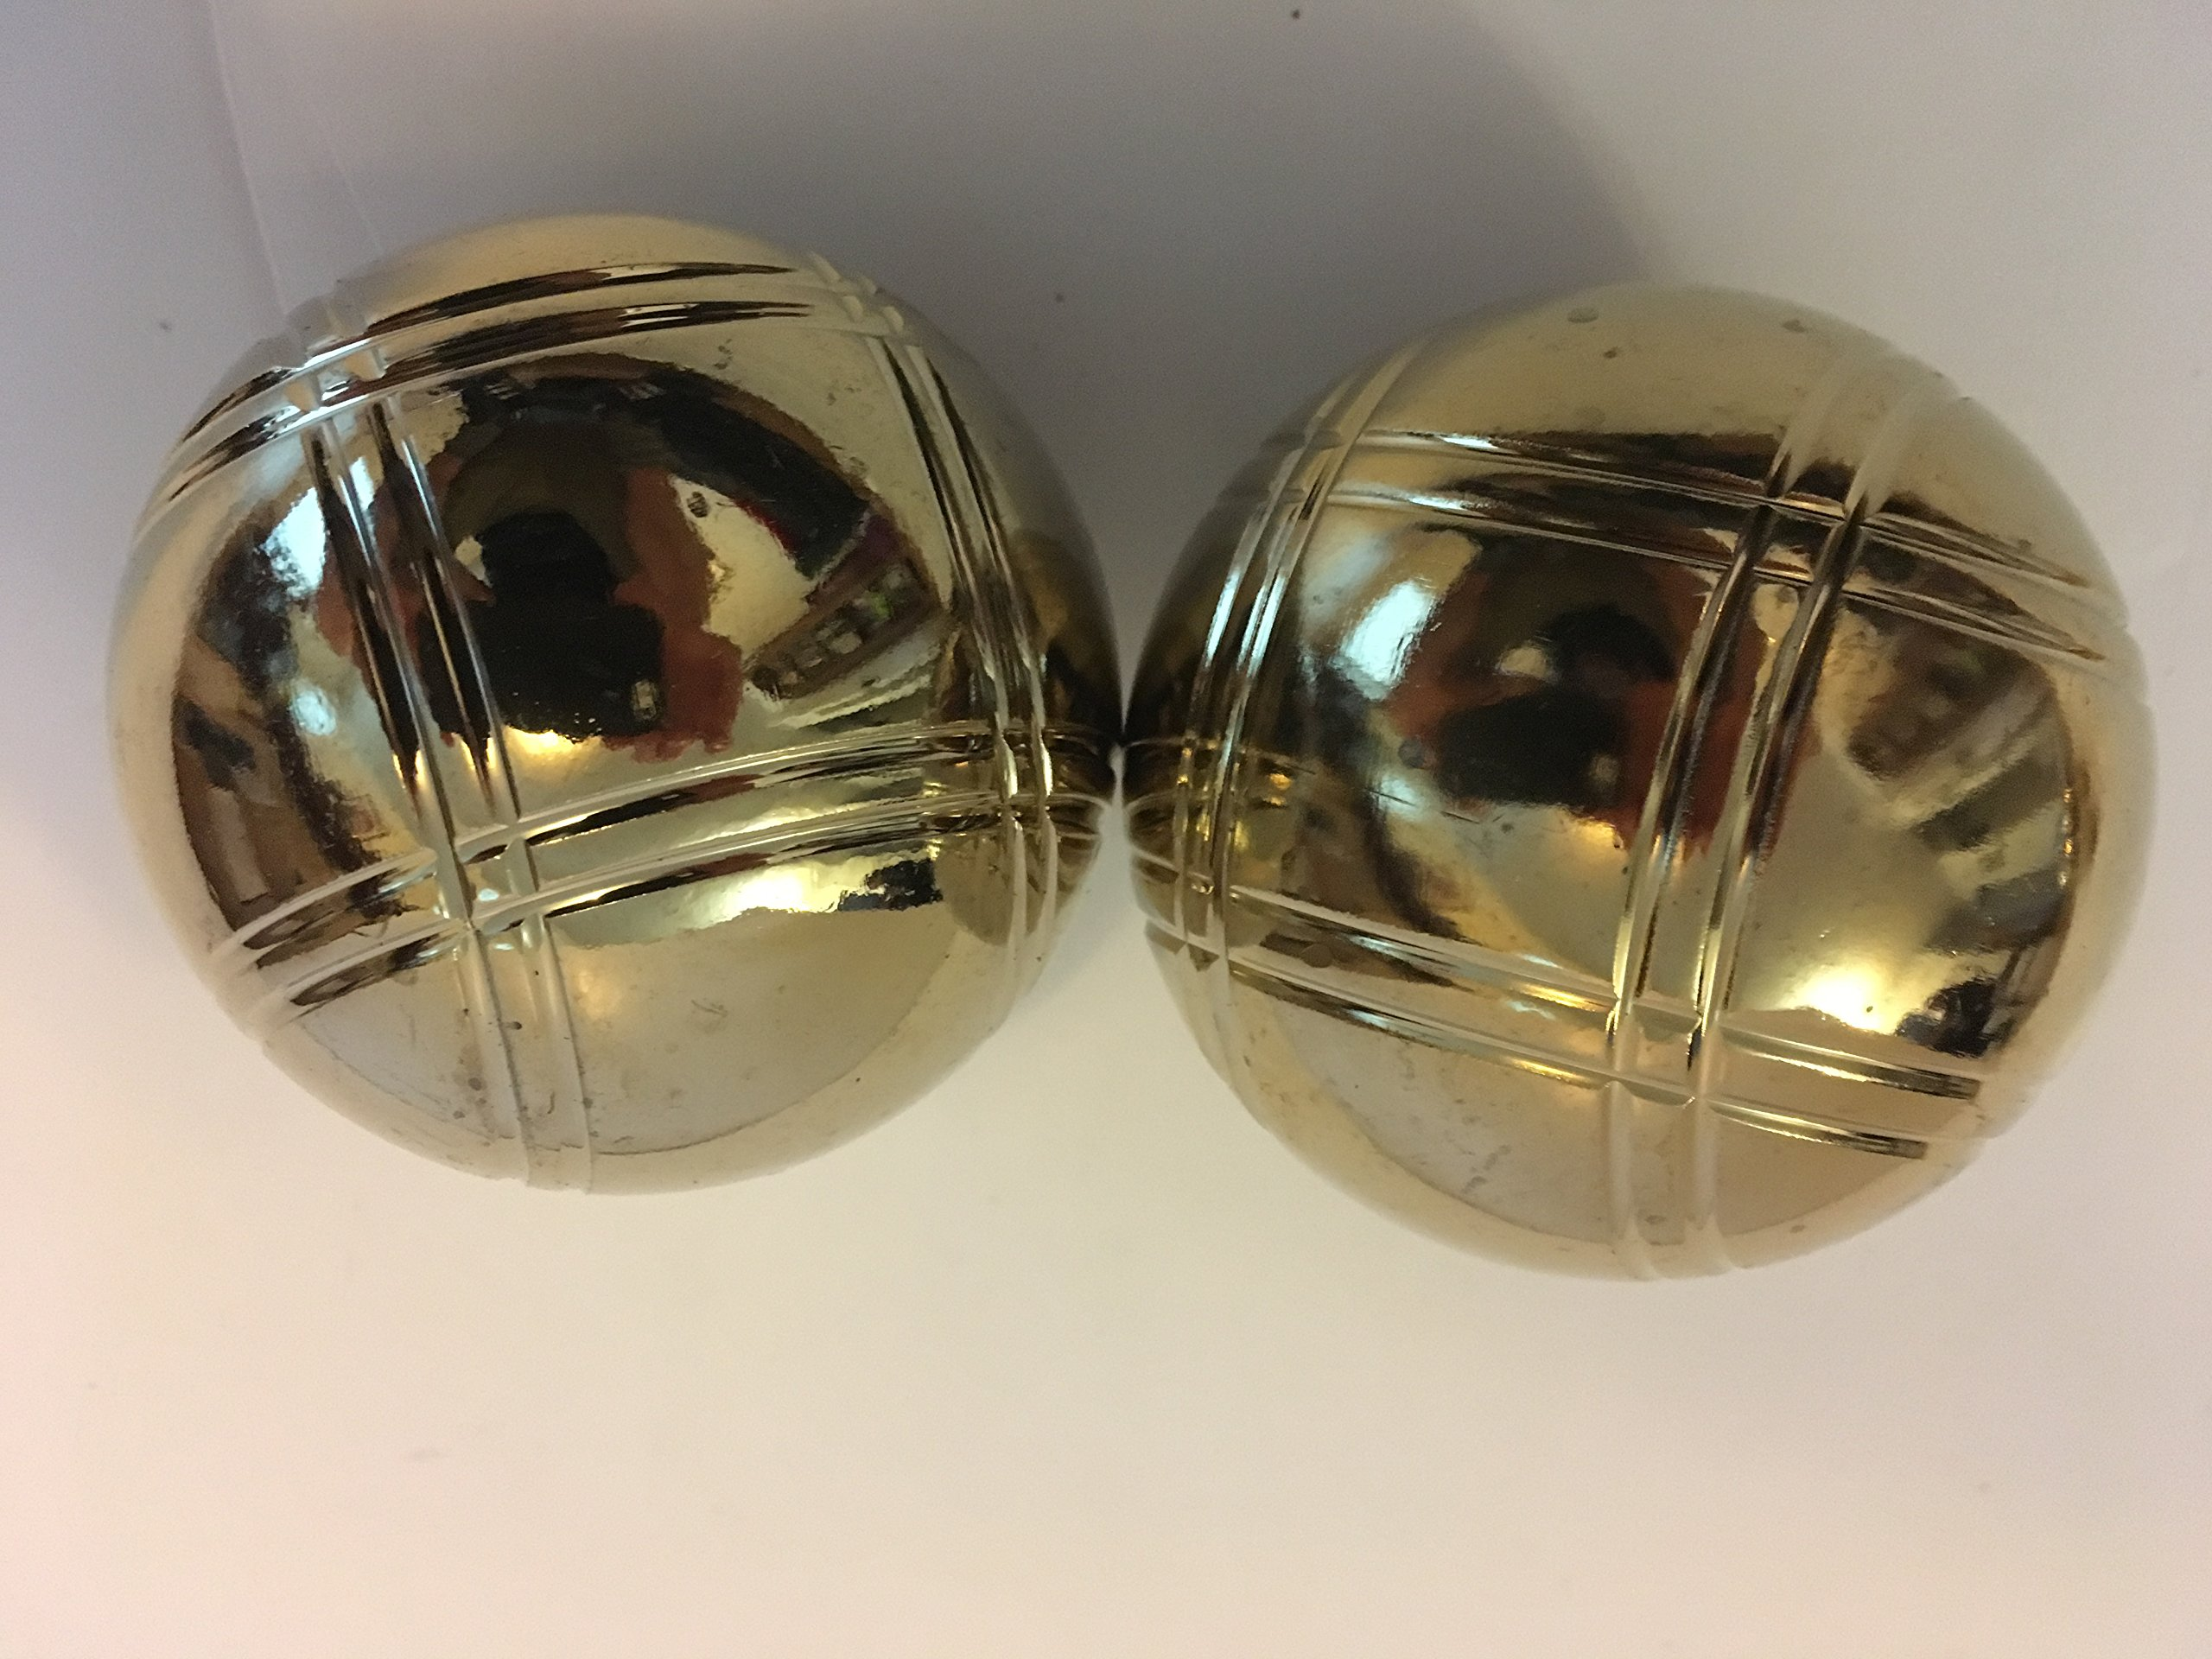 Replacement 73mm Metal Bocce/Petanque Gold Balls - pack of 2 with small criss cross pattern